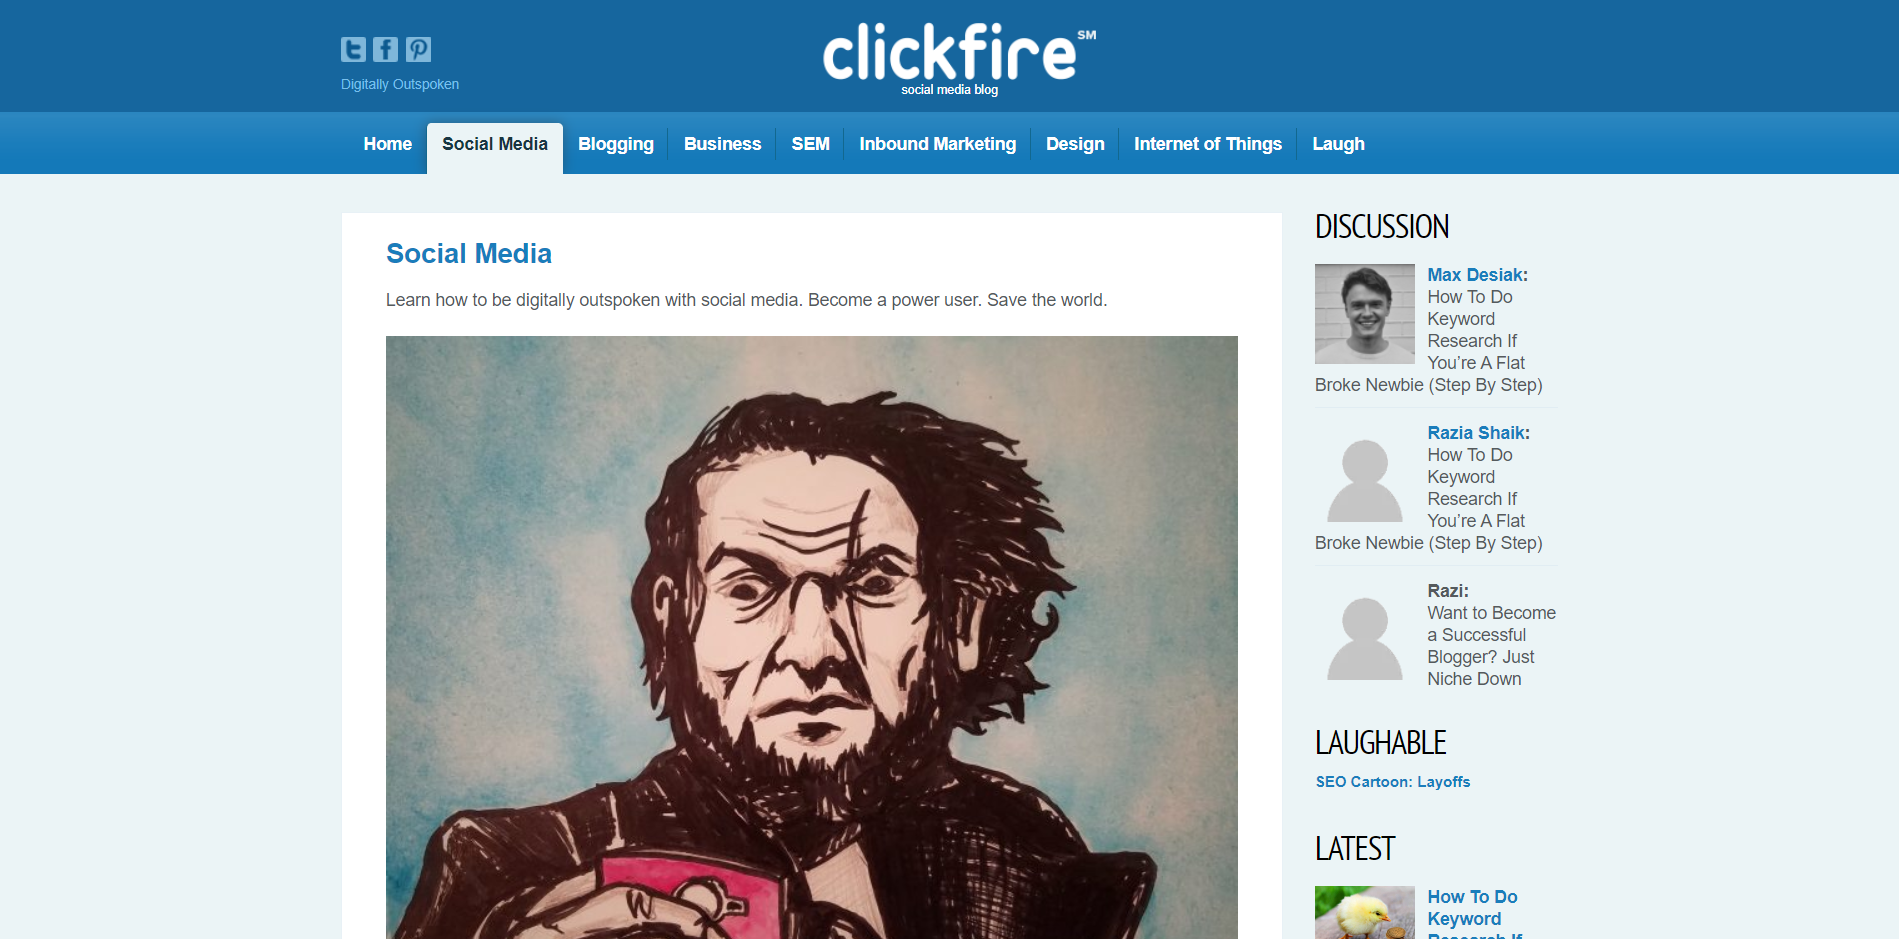 A category page onClickfire in 1920x1080 resolution